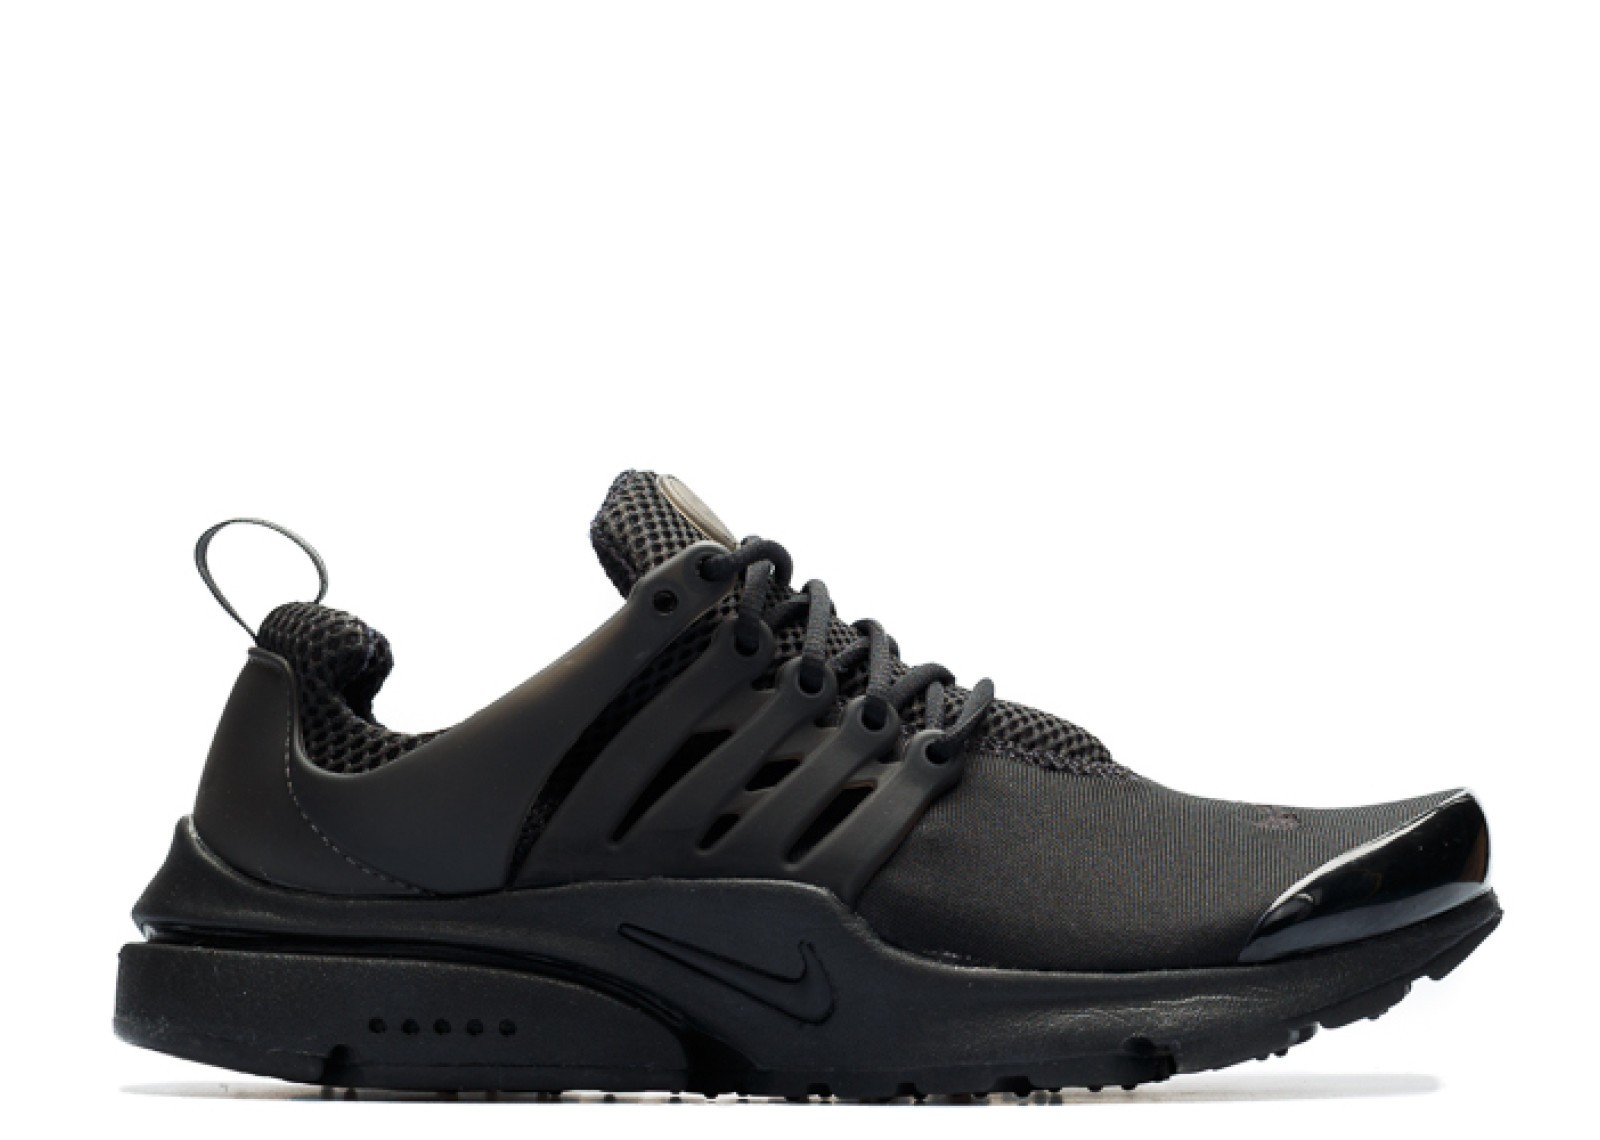 buy online c2e5f 915ef Prev Air Presto Triple Black Black 305919-009